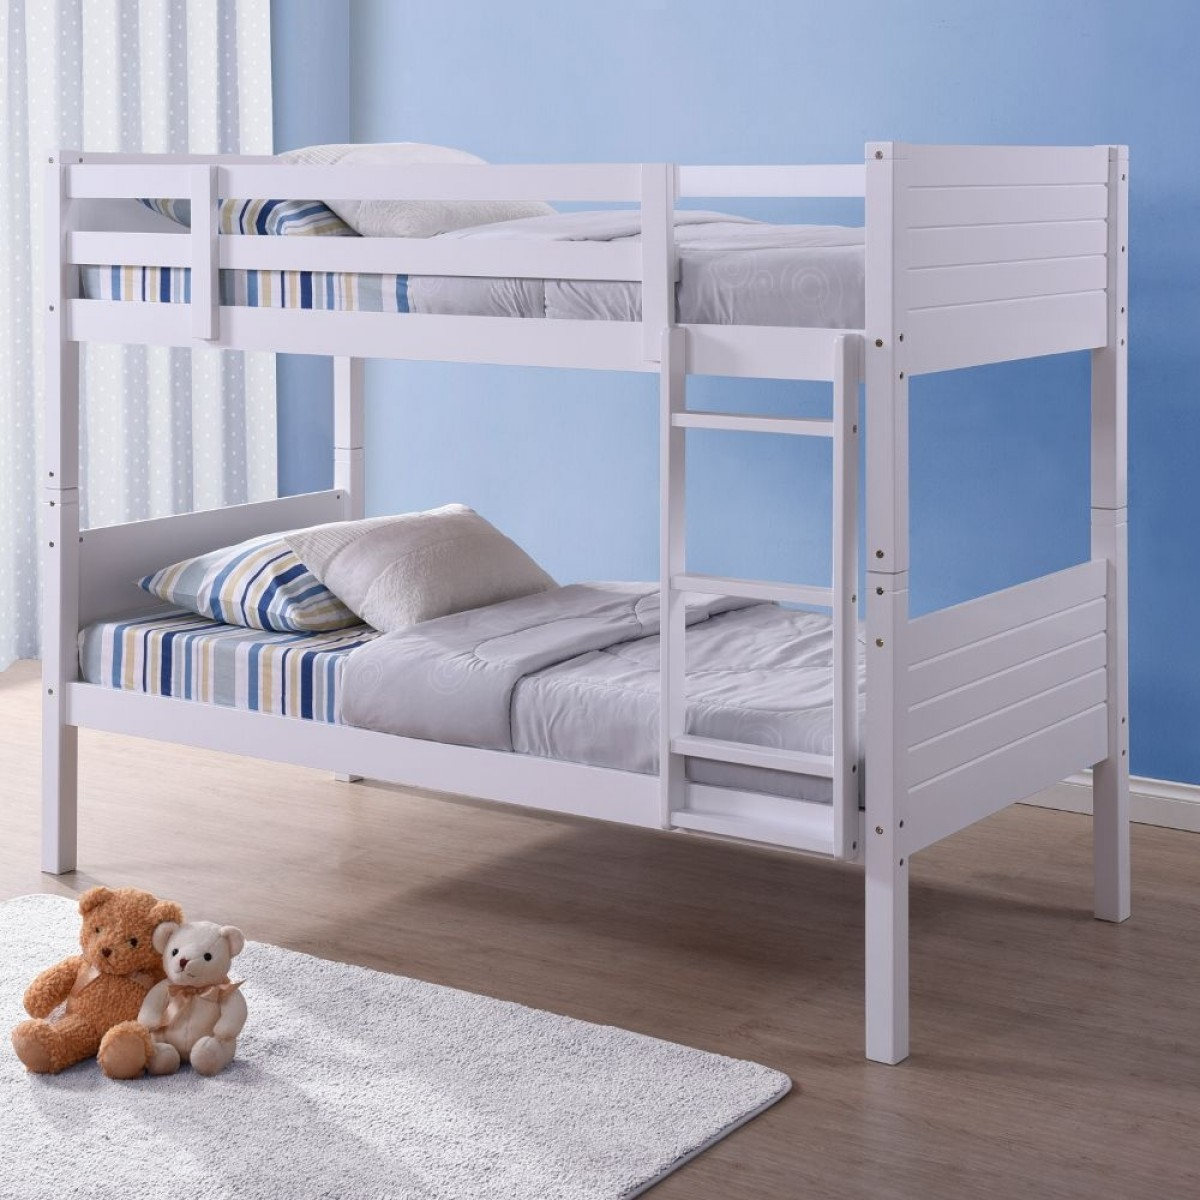 White Wooden Bunk Beds Bedford White Wooden Bunk Bed